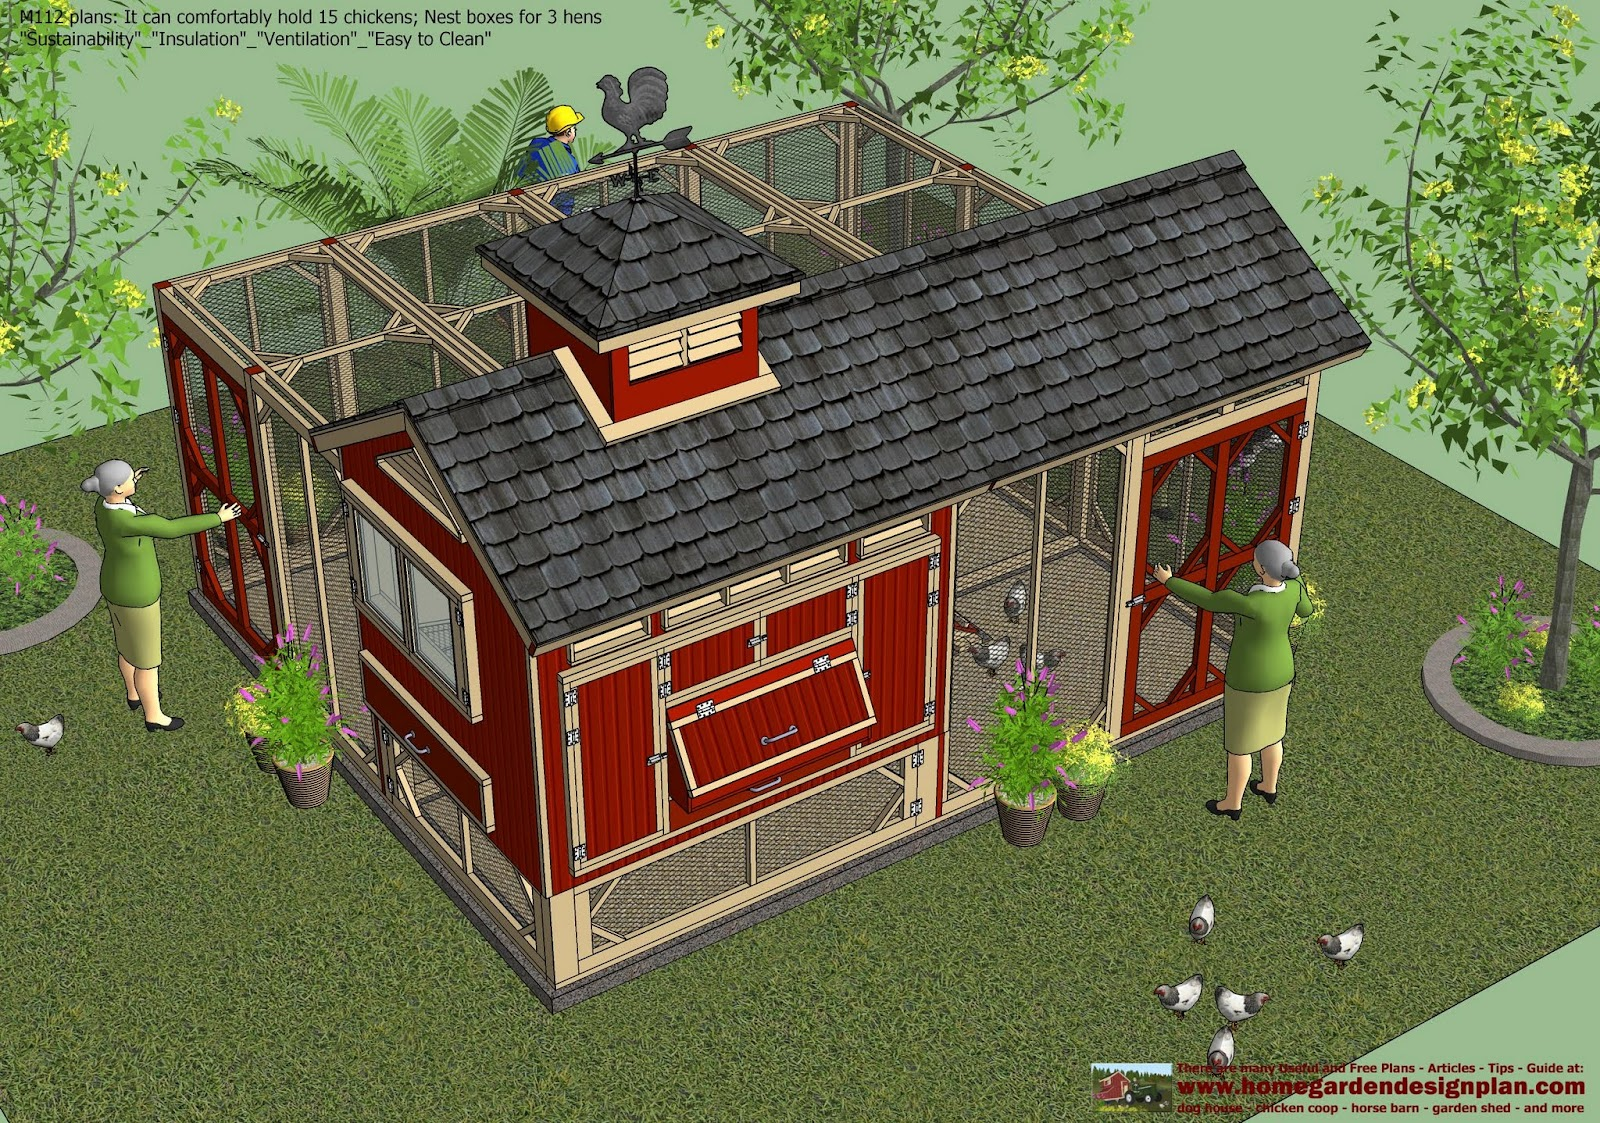 Home garden plans m112 chicken coop plans construction for Plans for chicken coops